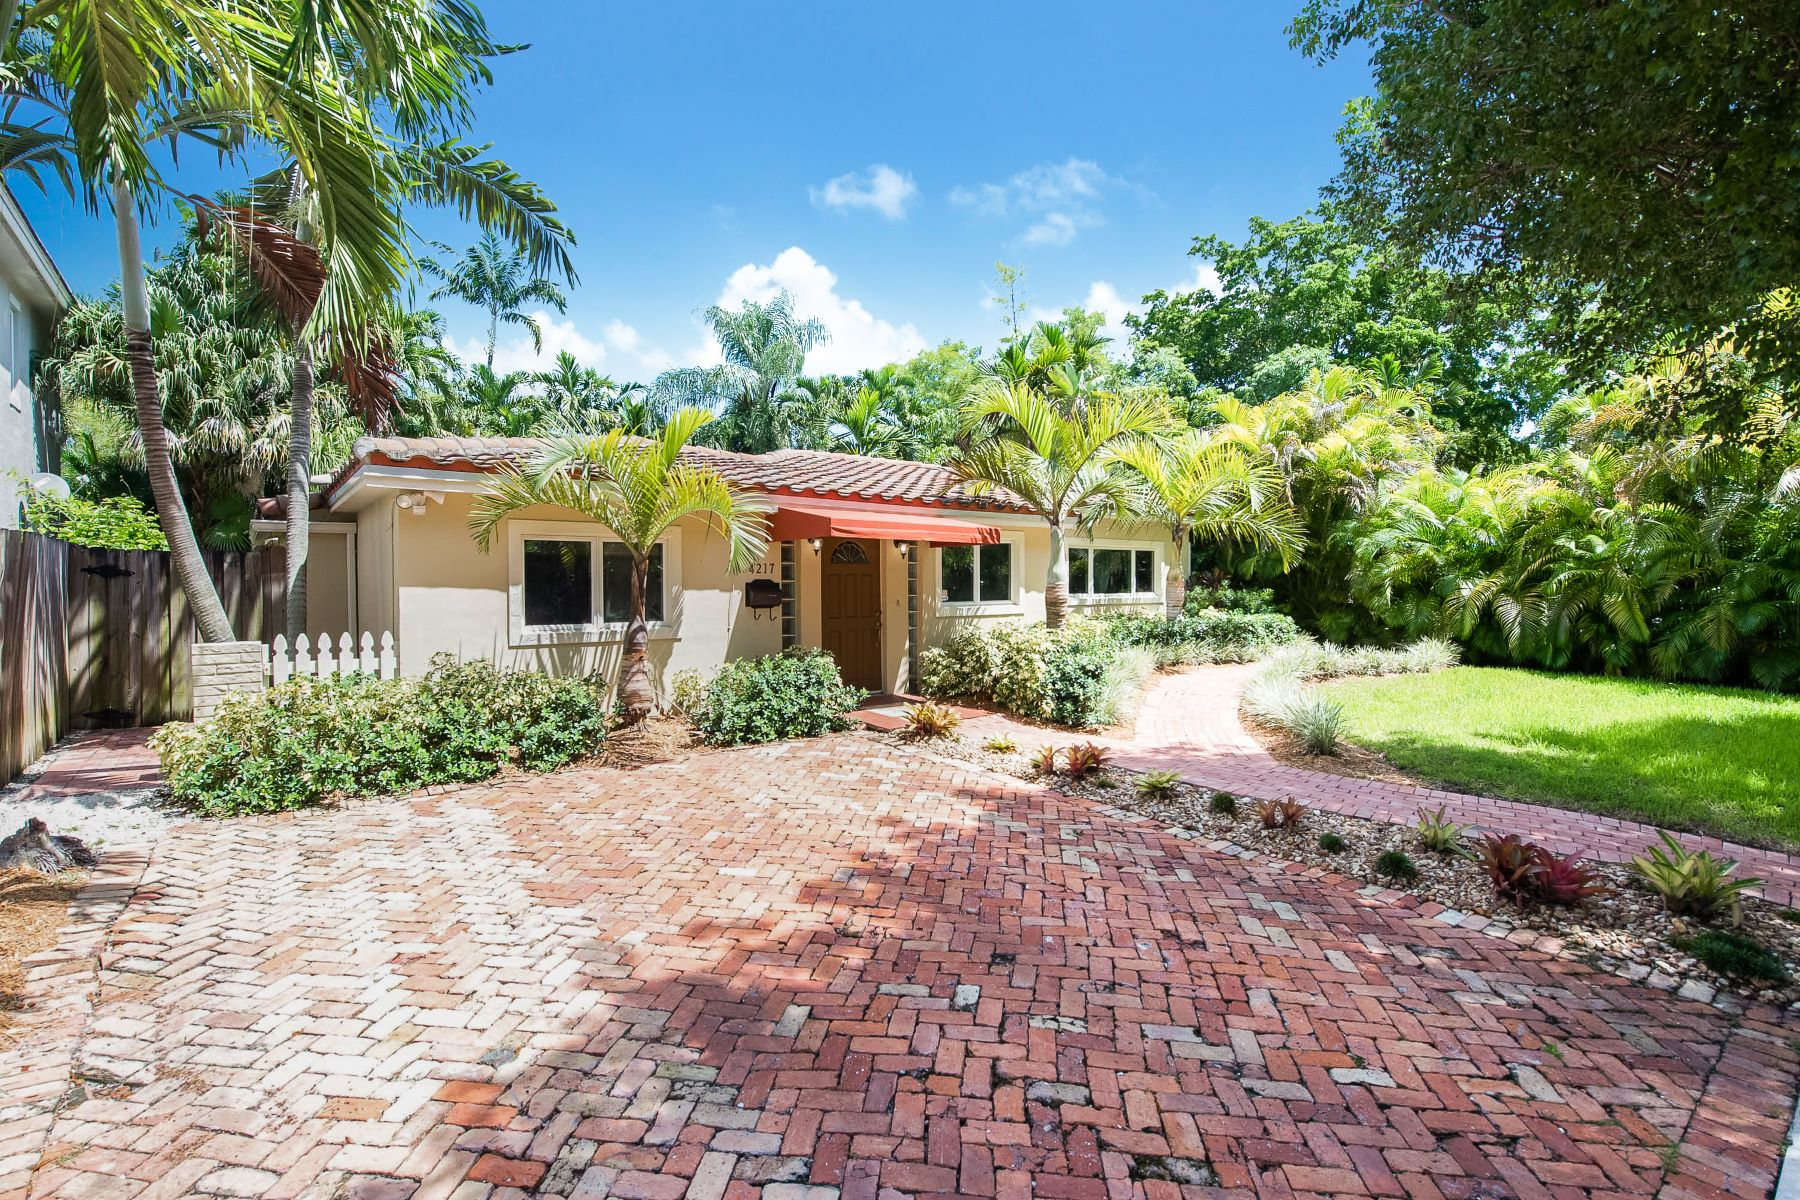 House for Sale at 4217 Anne Ct 4217 Anne Ct Coconut Grove, Florida 33133 United States